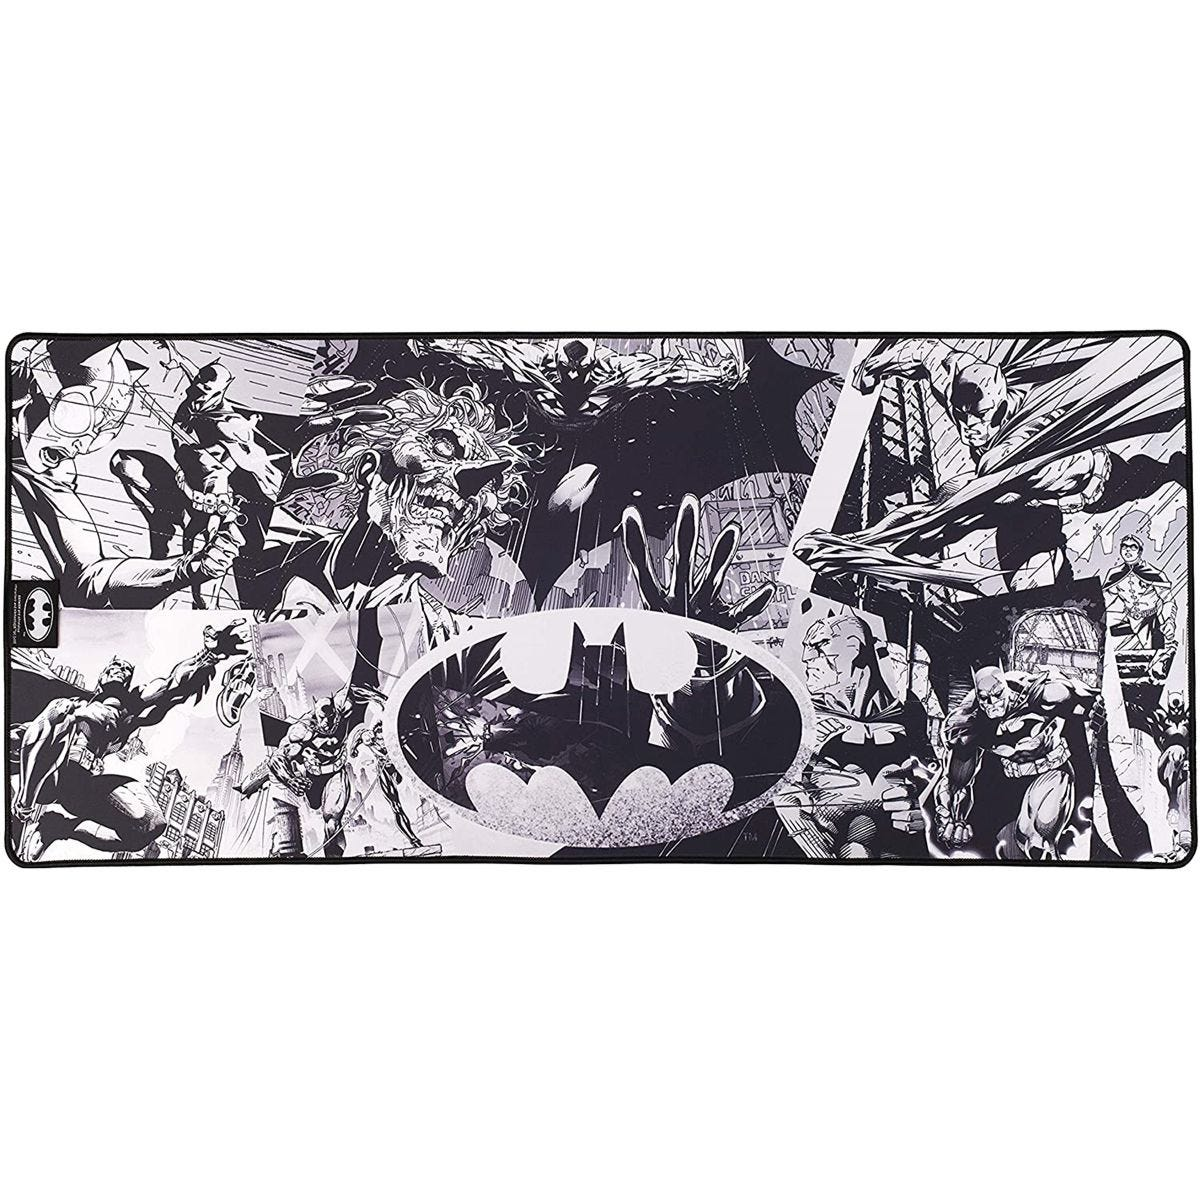 Subsonic Batman XXL Gamer Mouse Pad